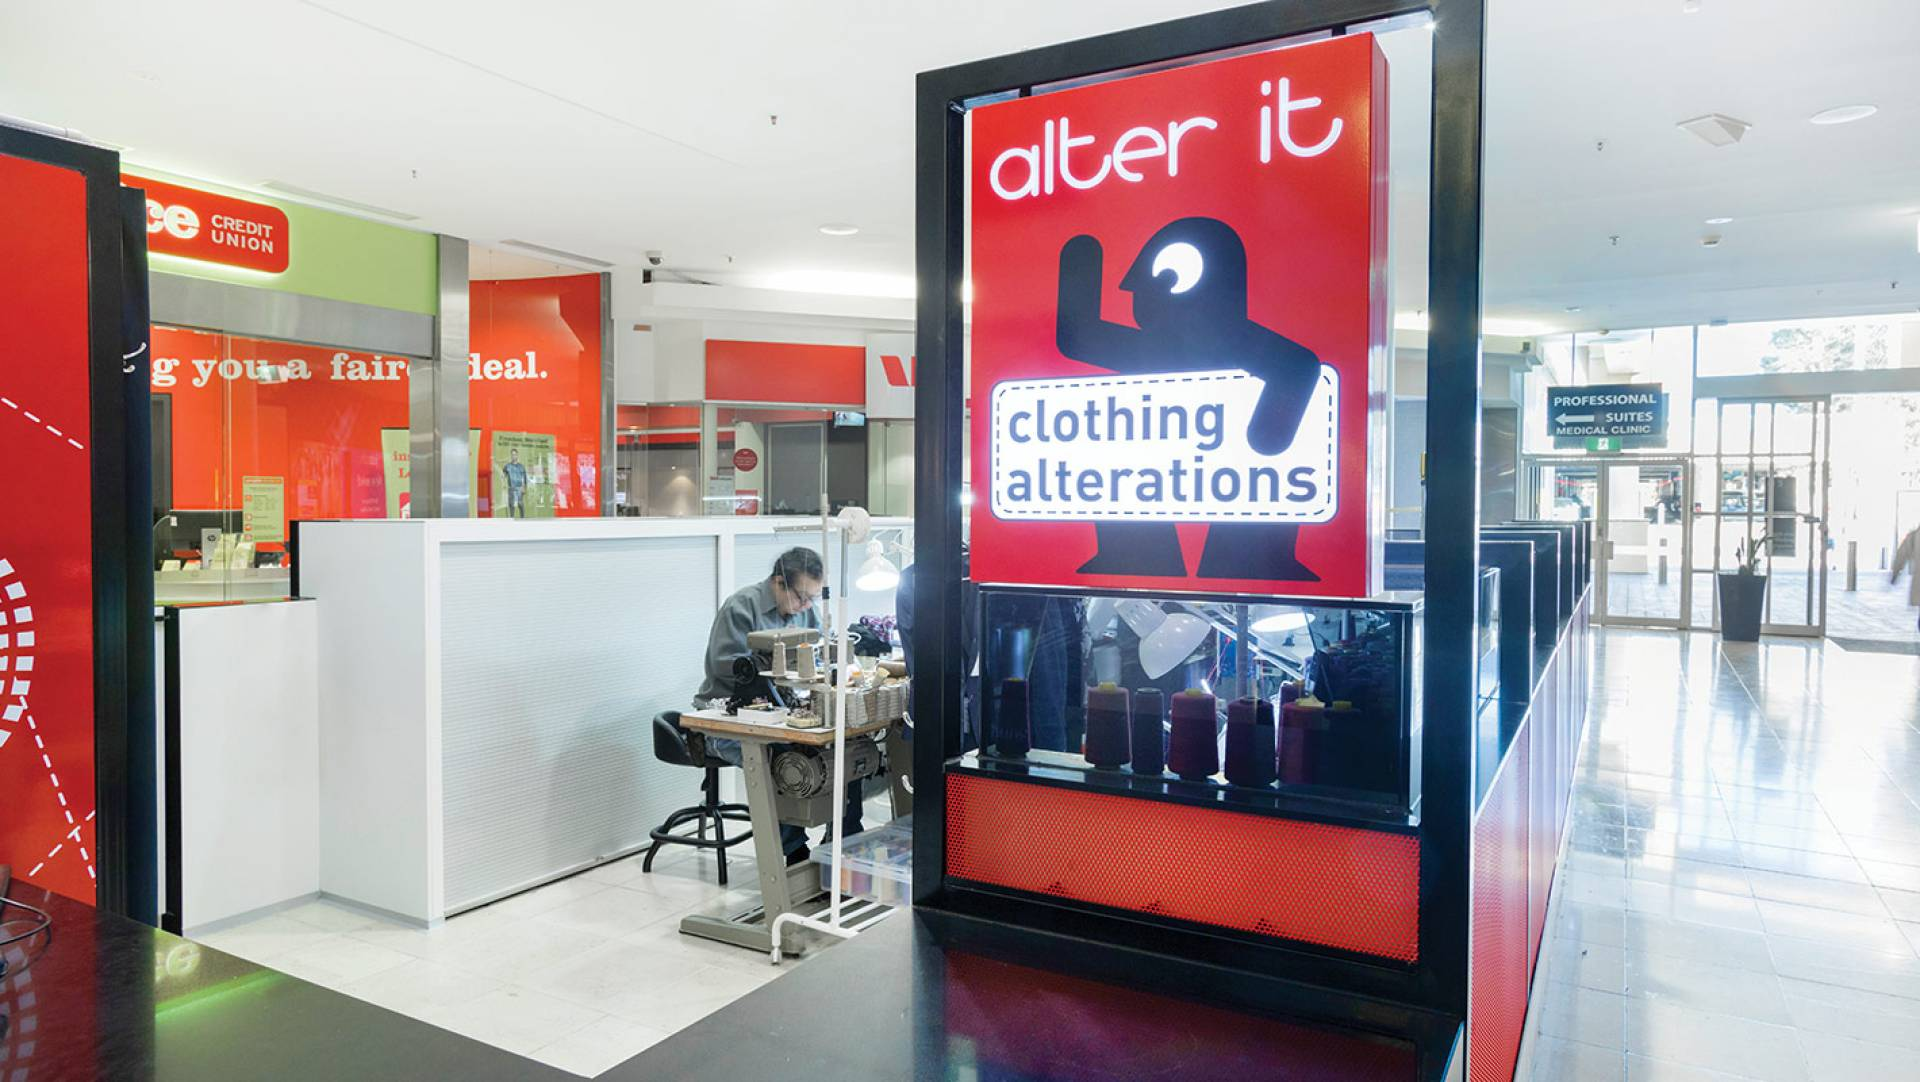 Alter It Clothing Alterations - Kiosk Design -  Signage Detail